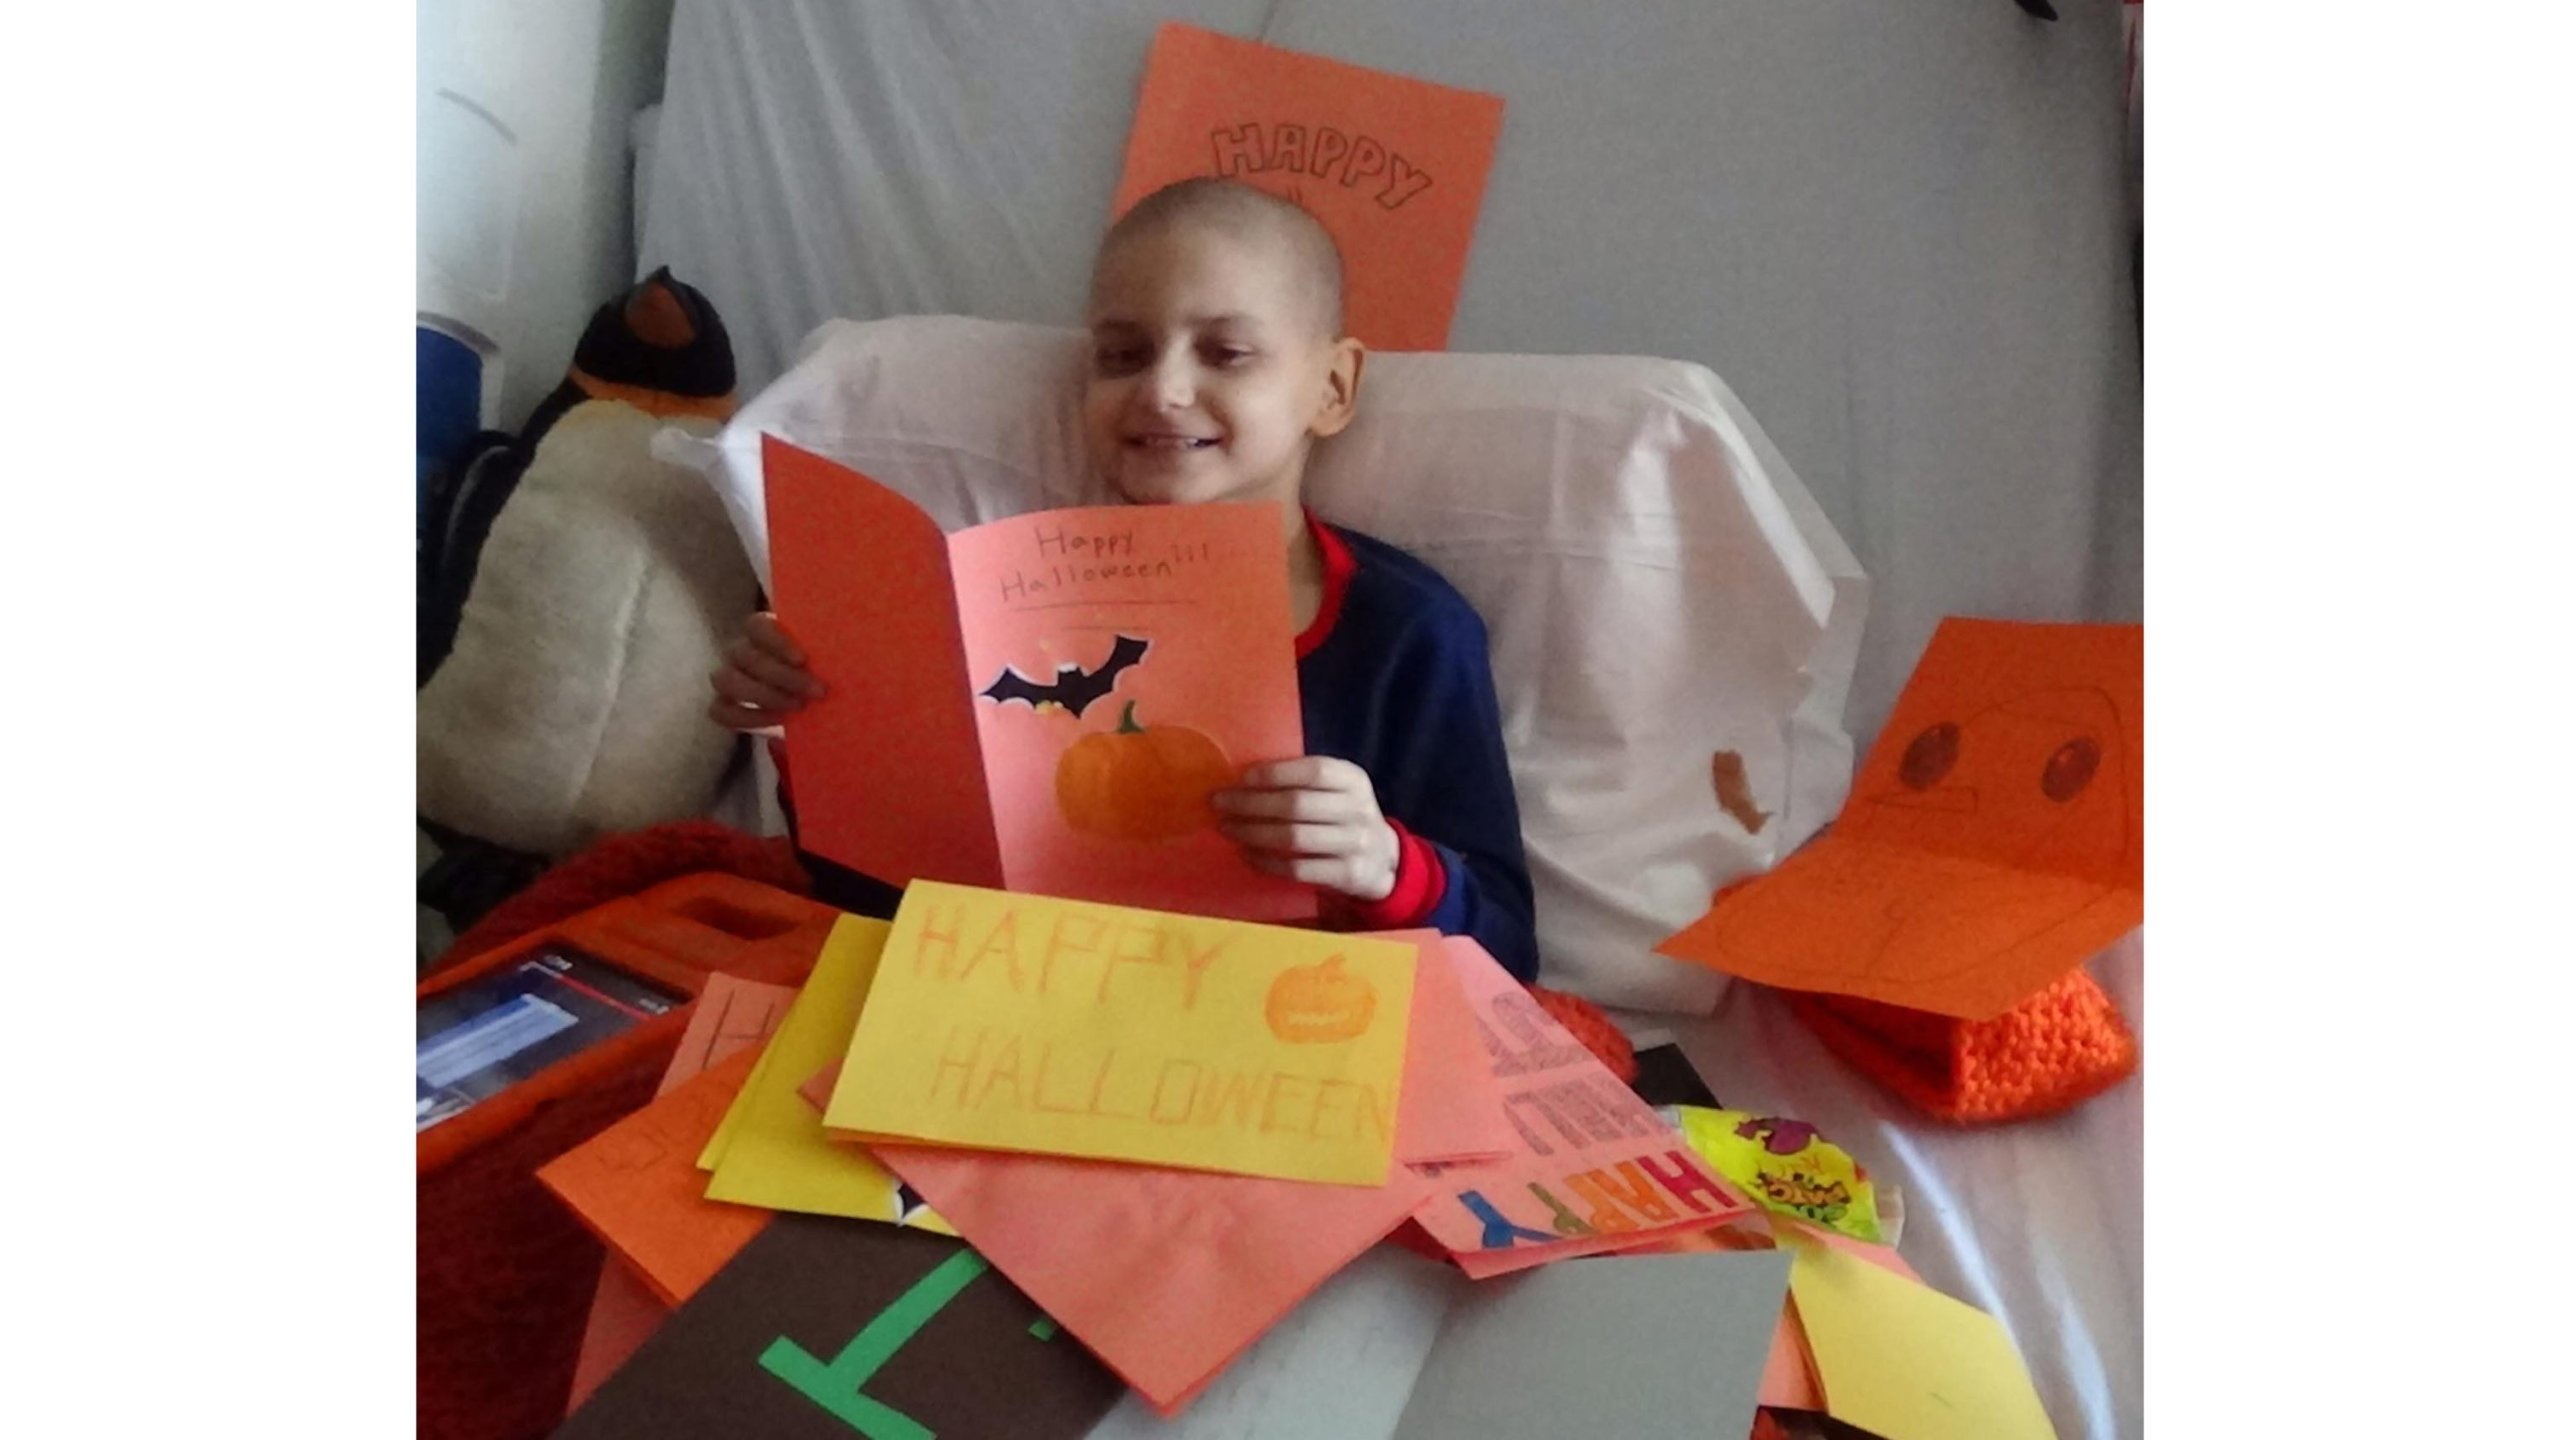 9-year-old boy loses battle with cancer